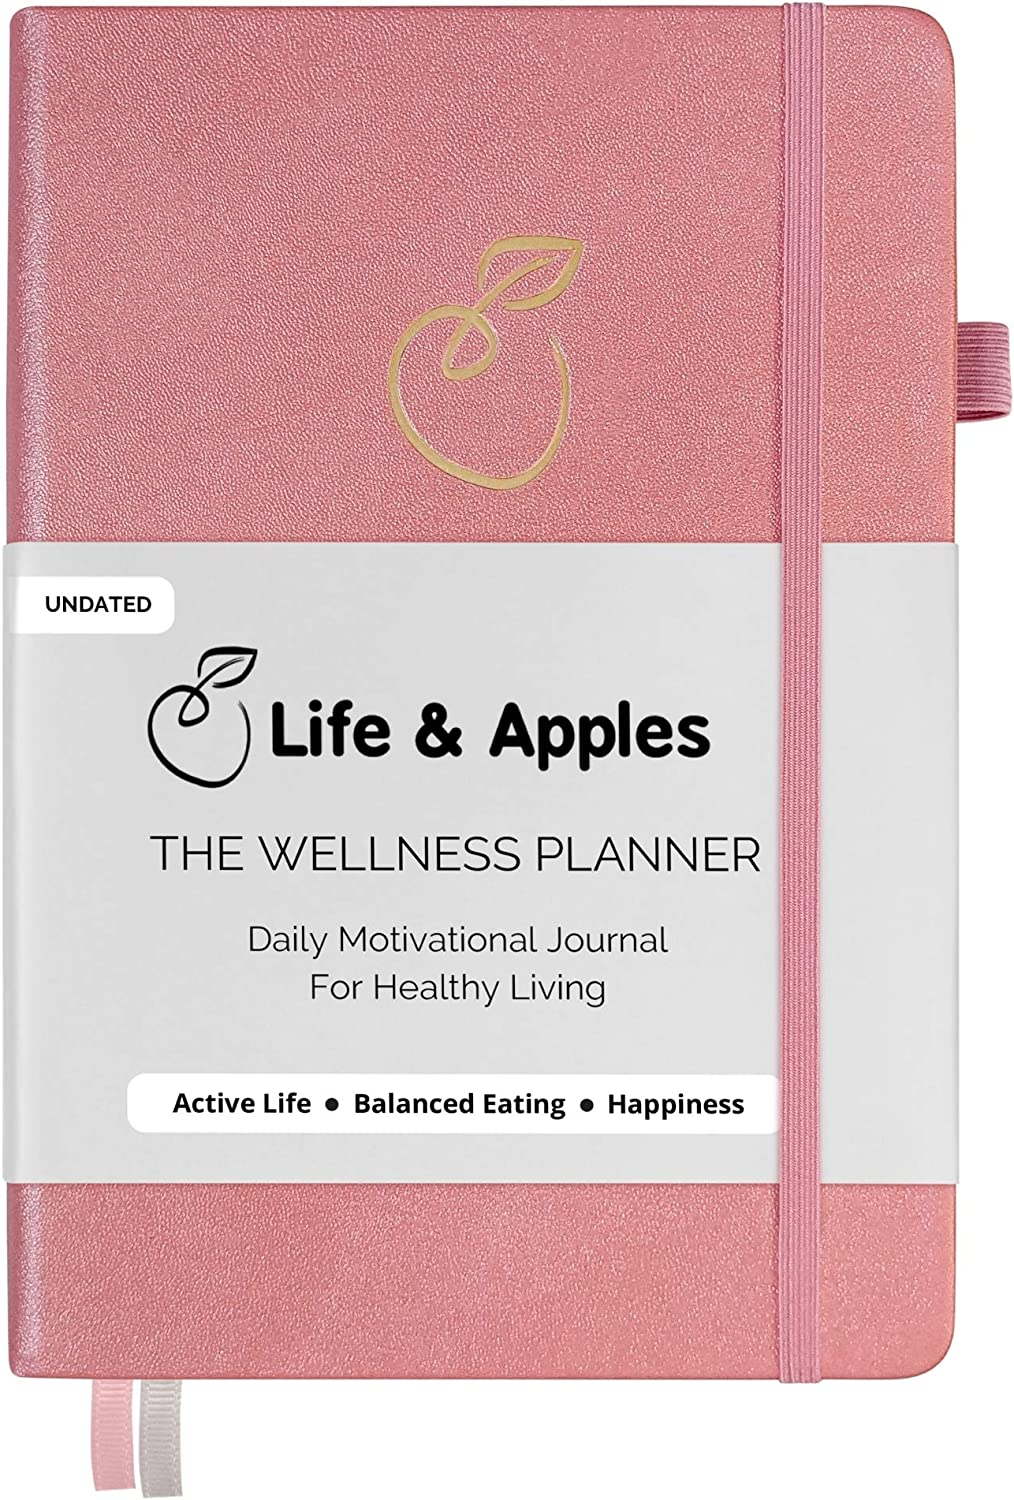 Life & Apples Wellness Planner - Food Journal and Fitness Diary with Daily Gratitude and Meal Planner for Healthy Living - Track Weight Loss Diet and Achieve Health Goals - Undated, Pink